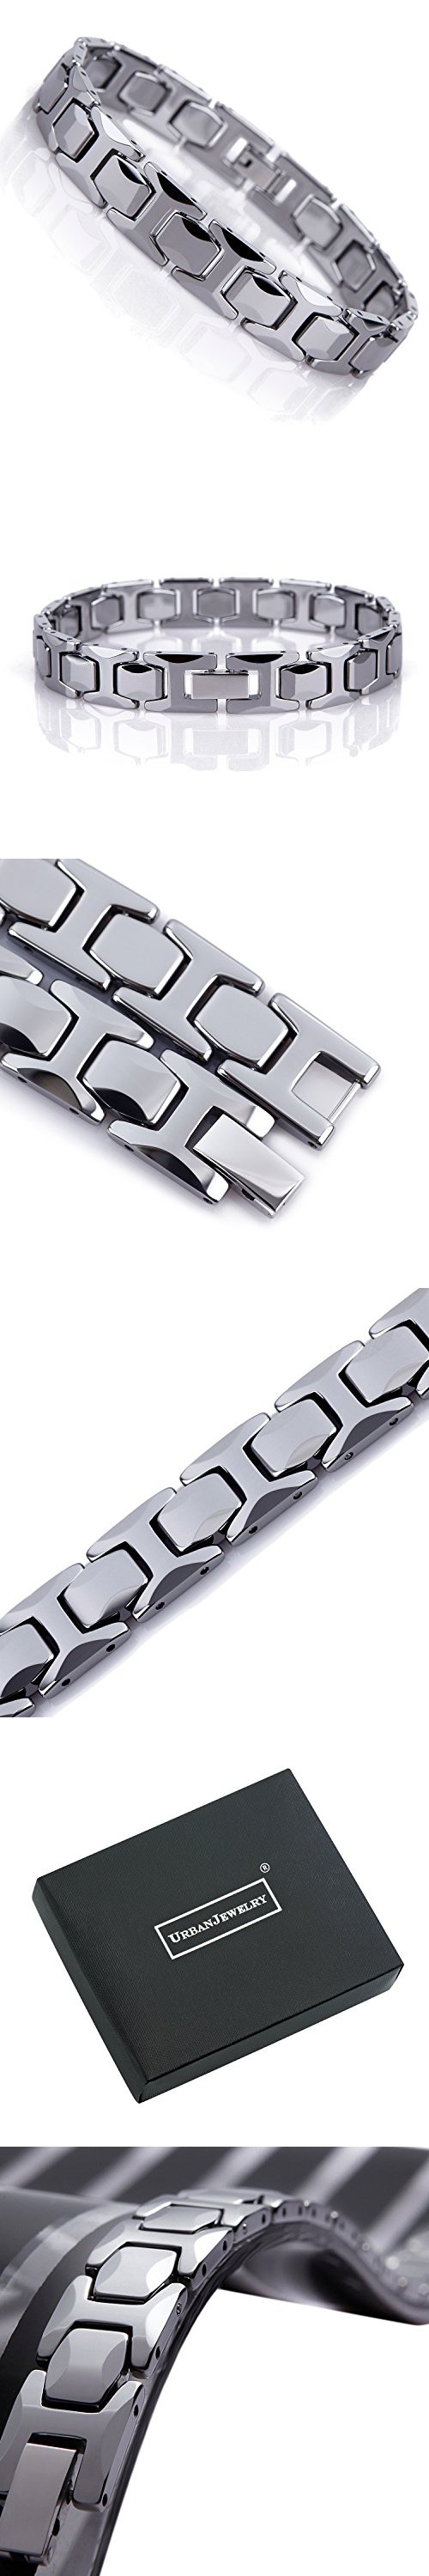 Stunning solid tungsten link bracelet for men polished pyramid style